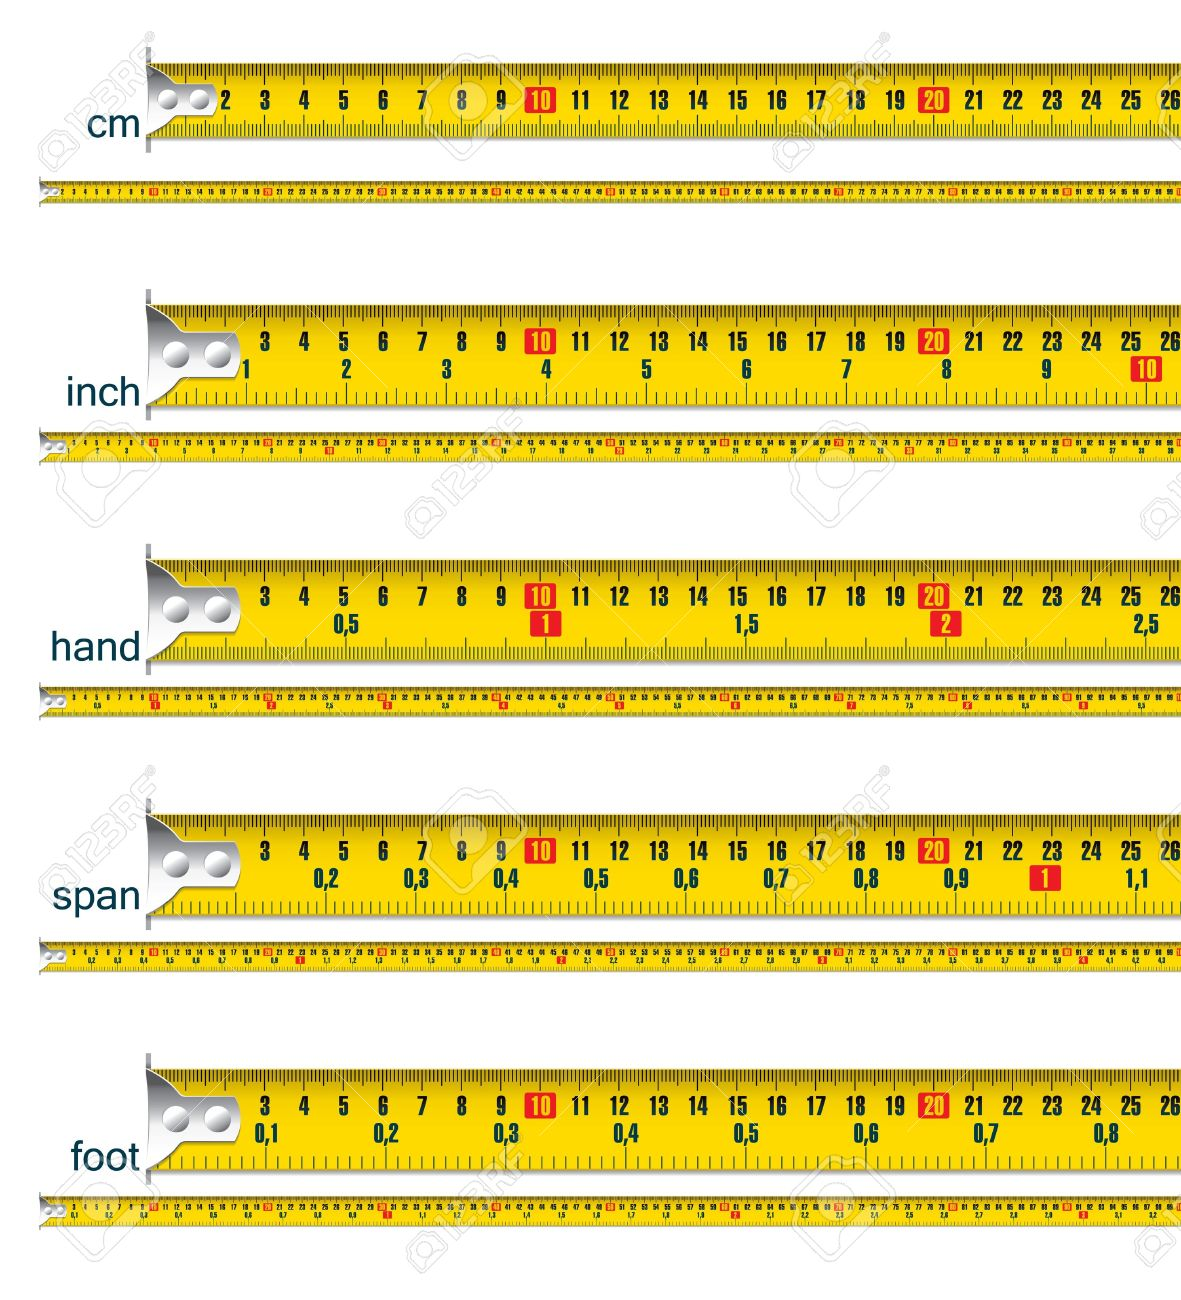 Ich Cm Tape Measure In Cm Cm And Inch Cm And Hand Cm And Span Cm